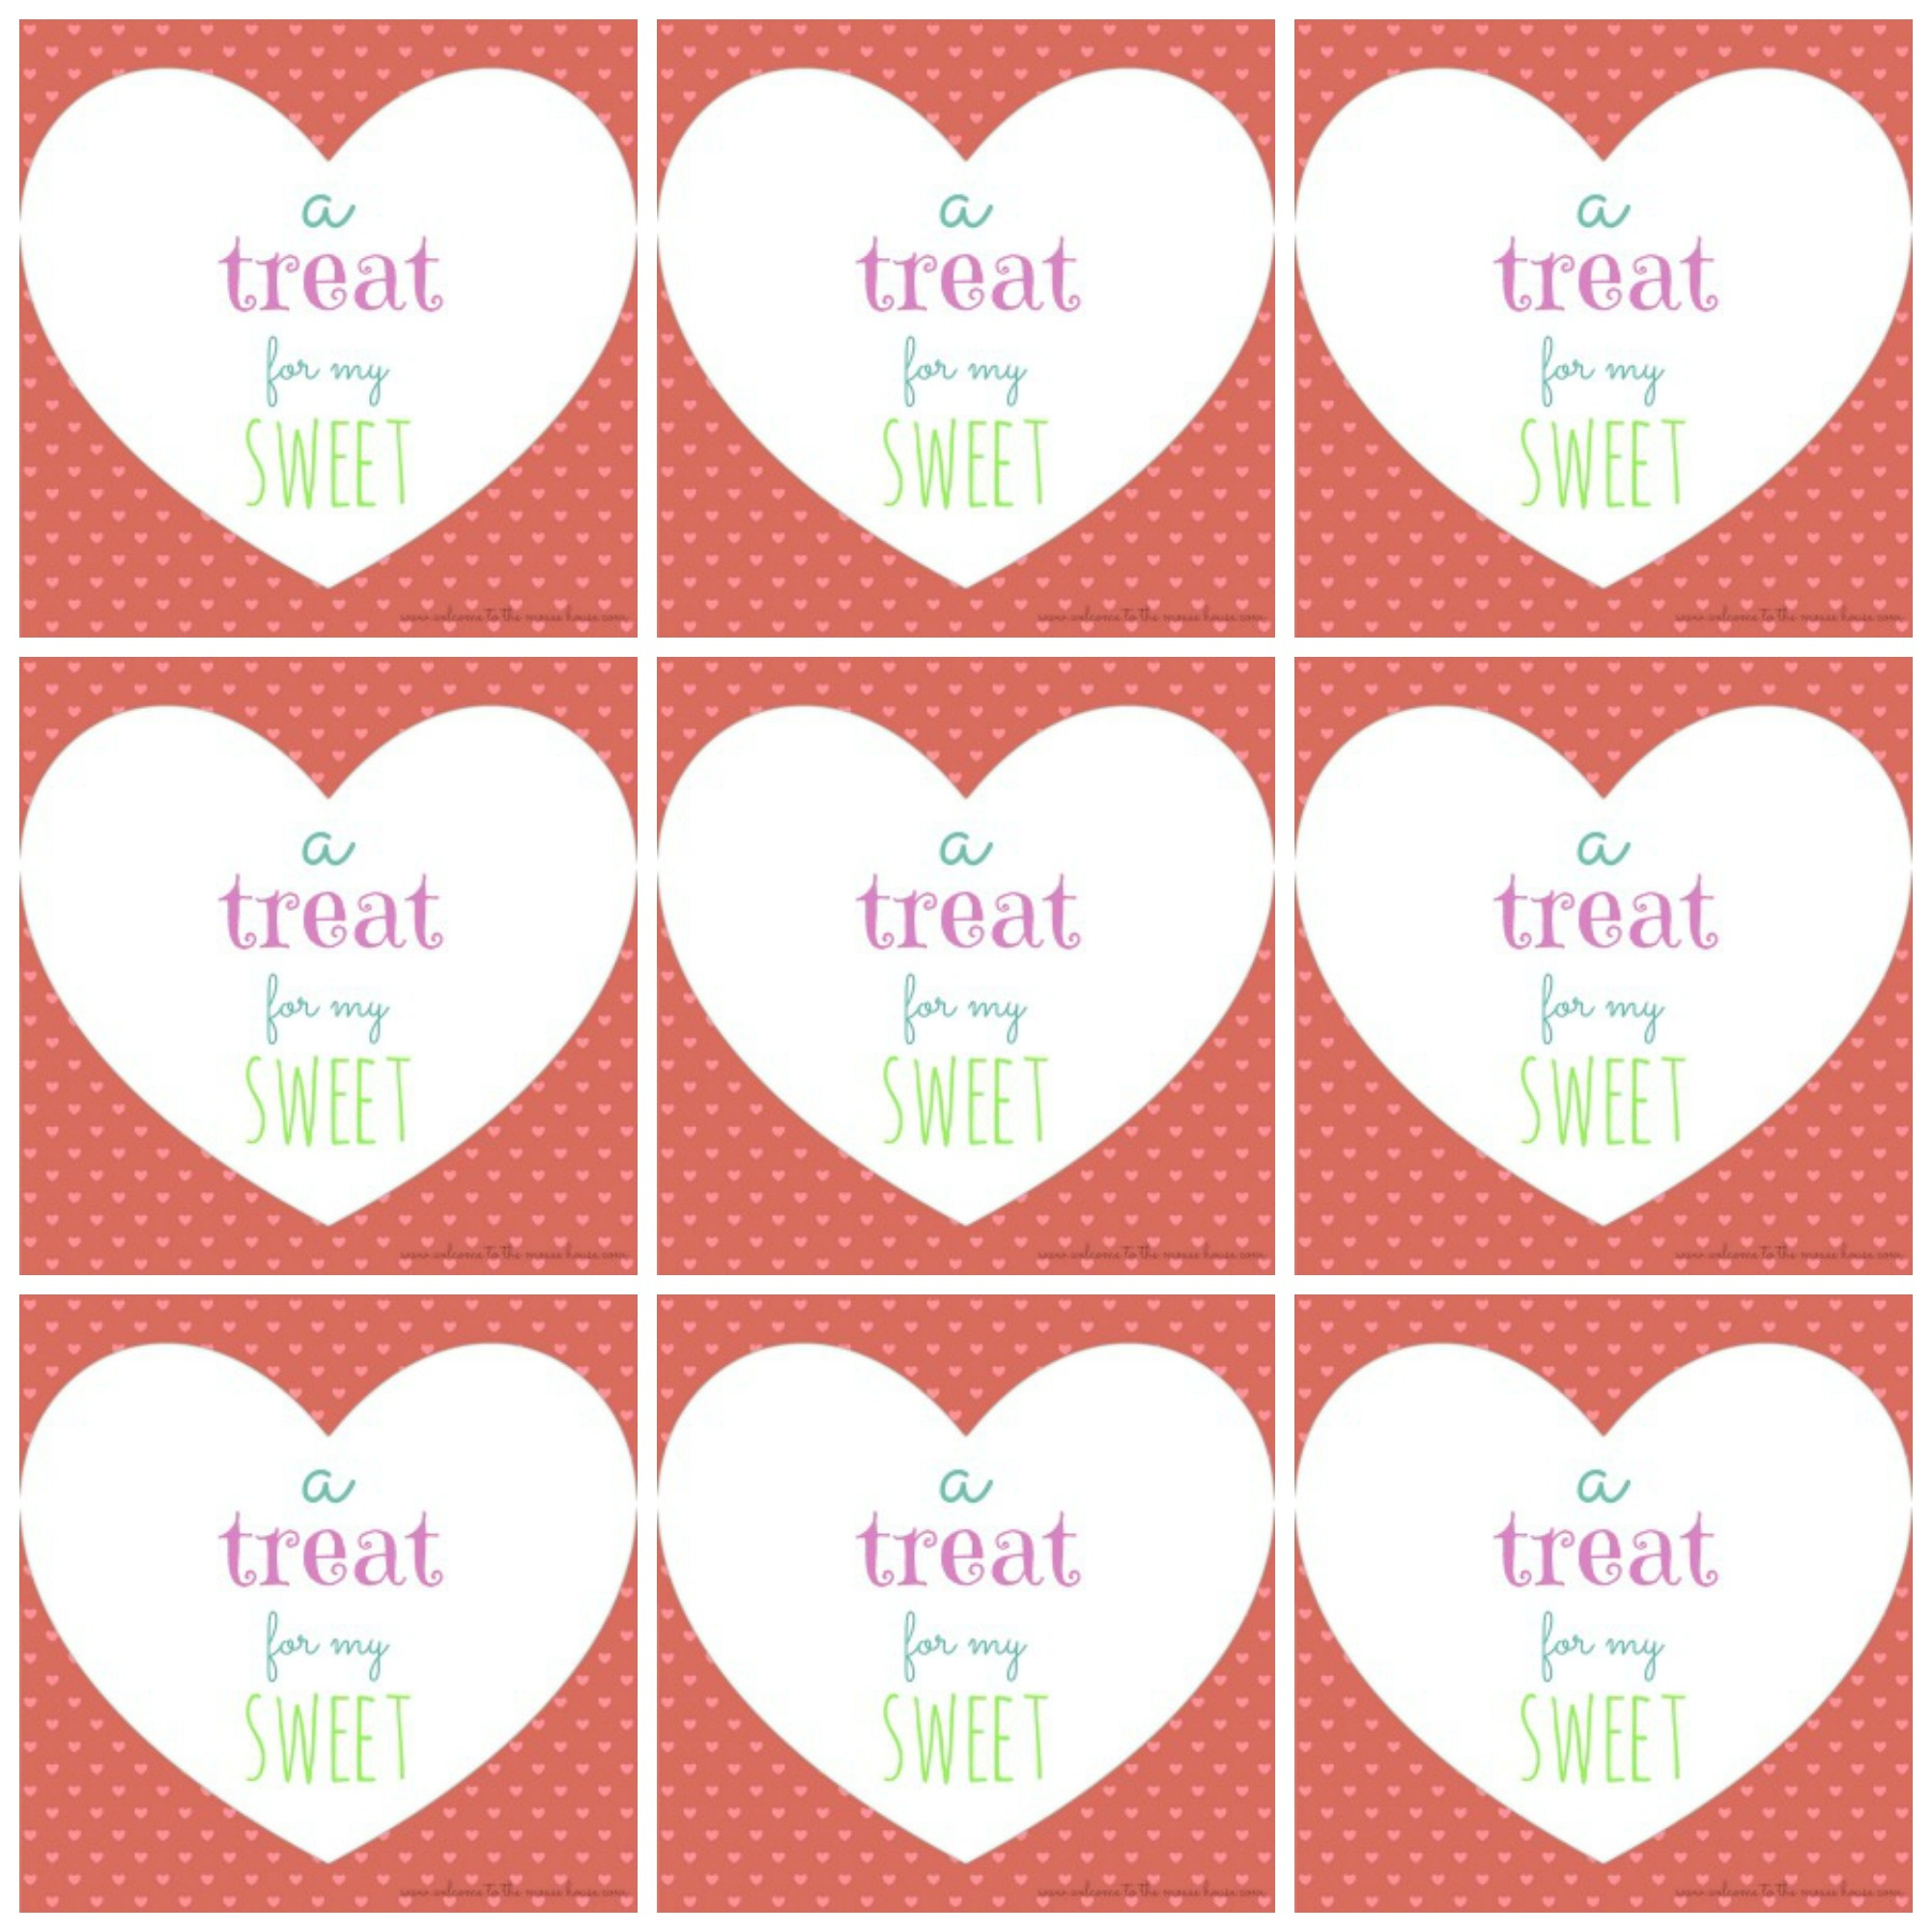 Free Printable Valentine's Day Tags - Free Printable Valentine Tags